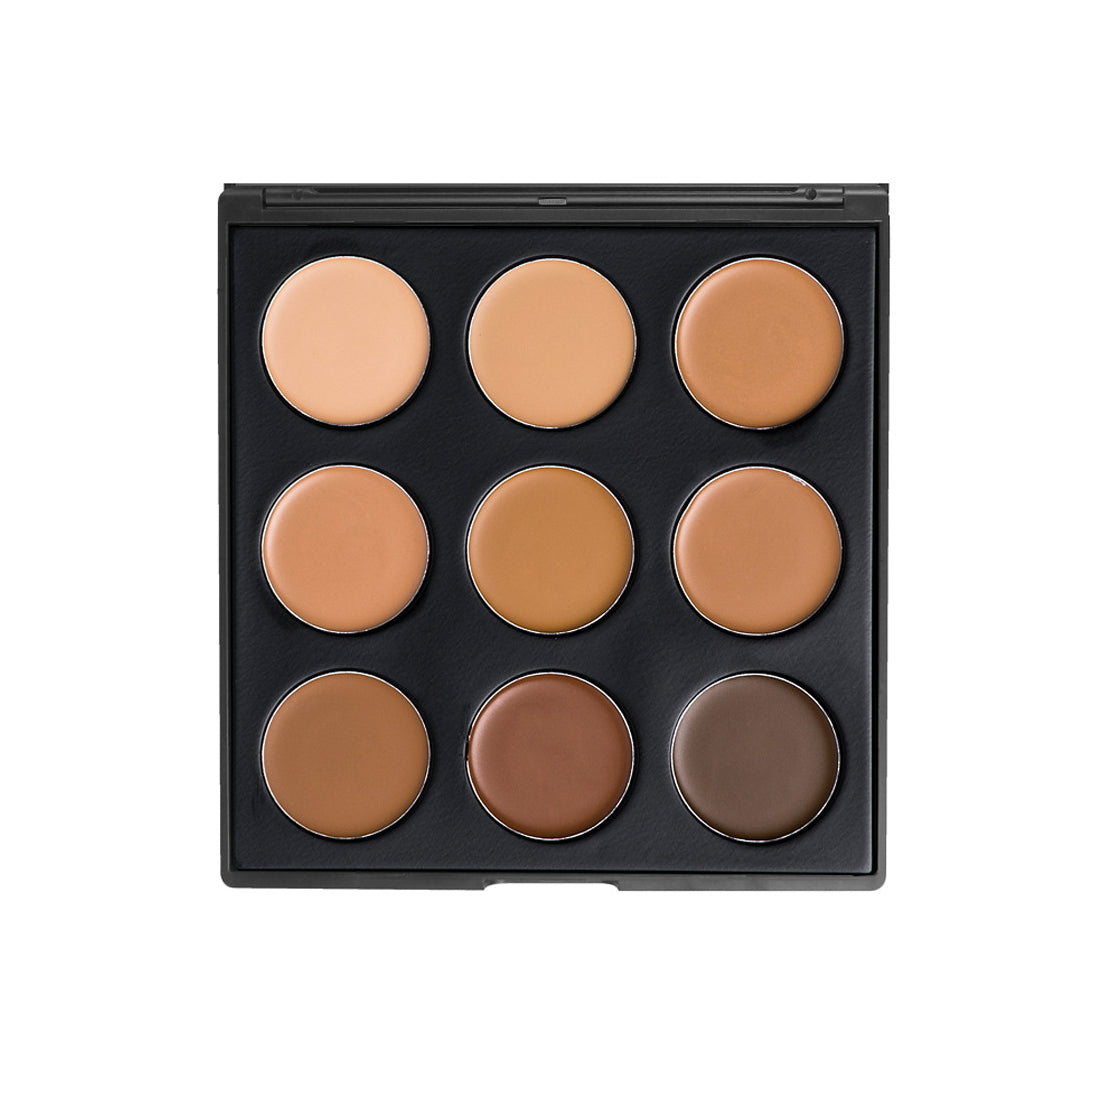 MORPHE BRUSHES Color Warm Foundation Palette | HODIVA SHOP